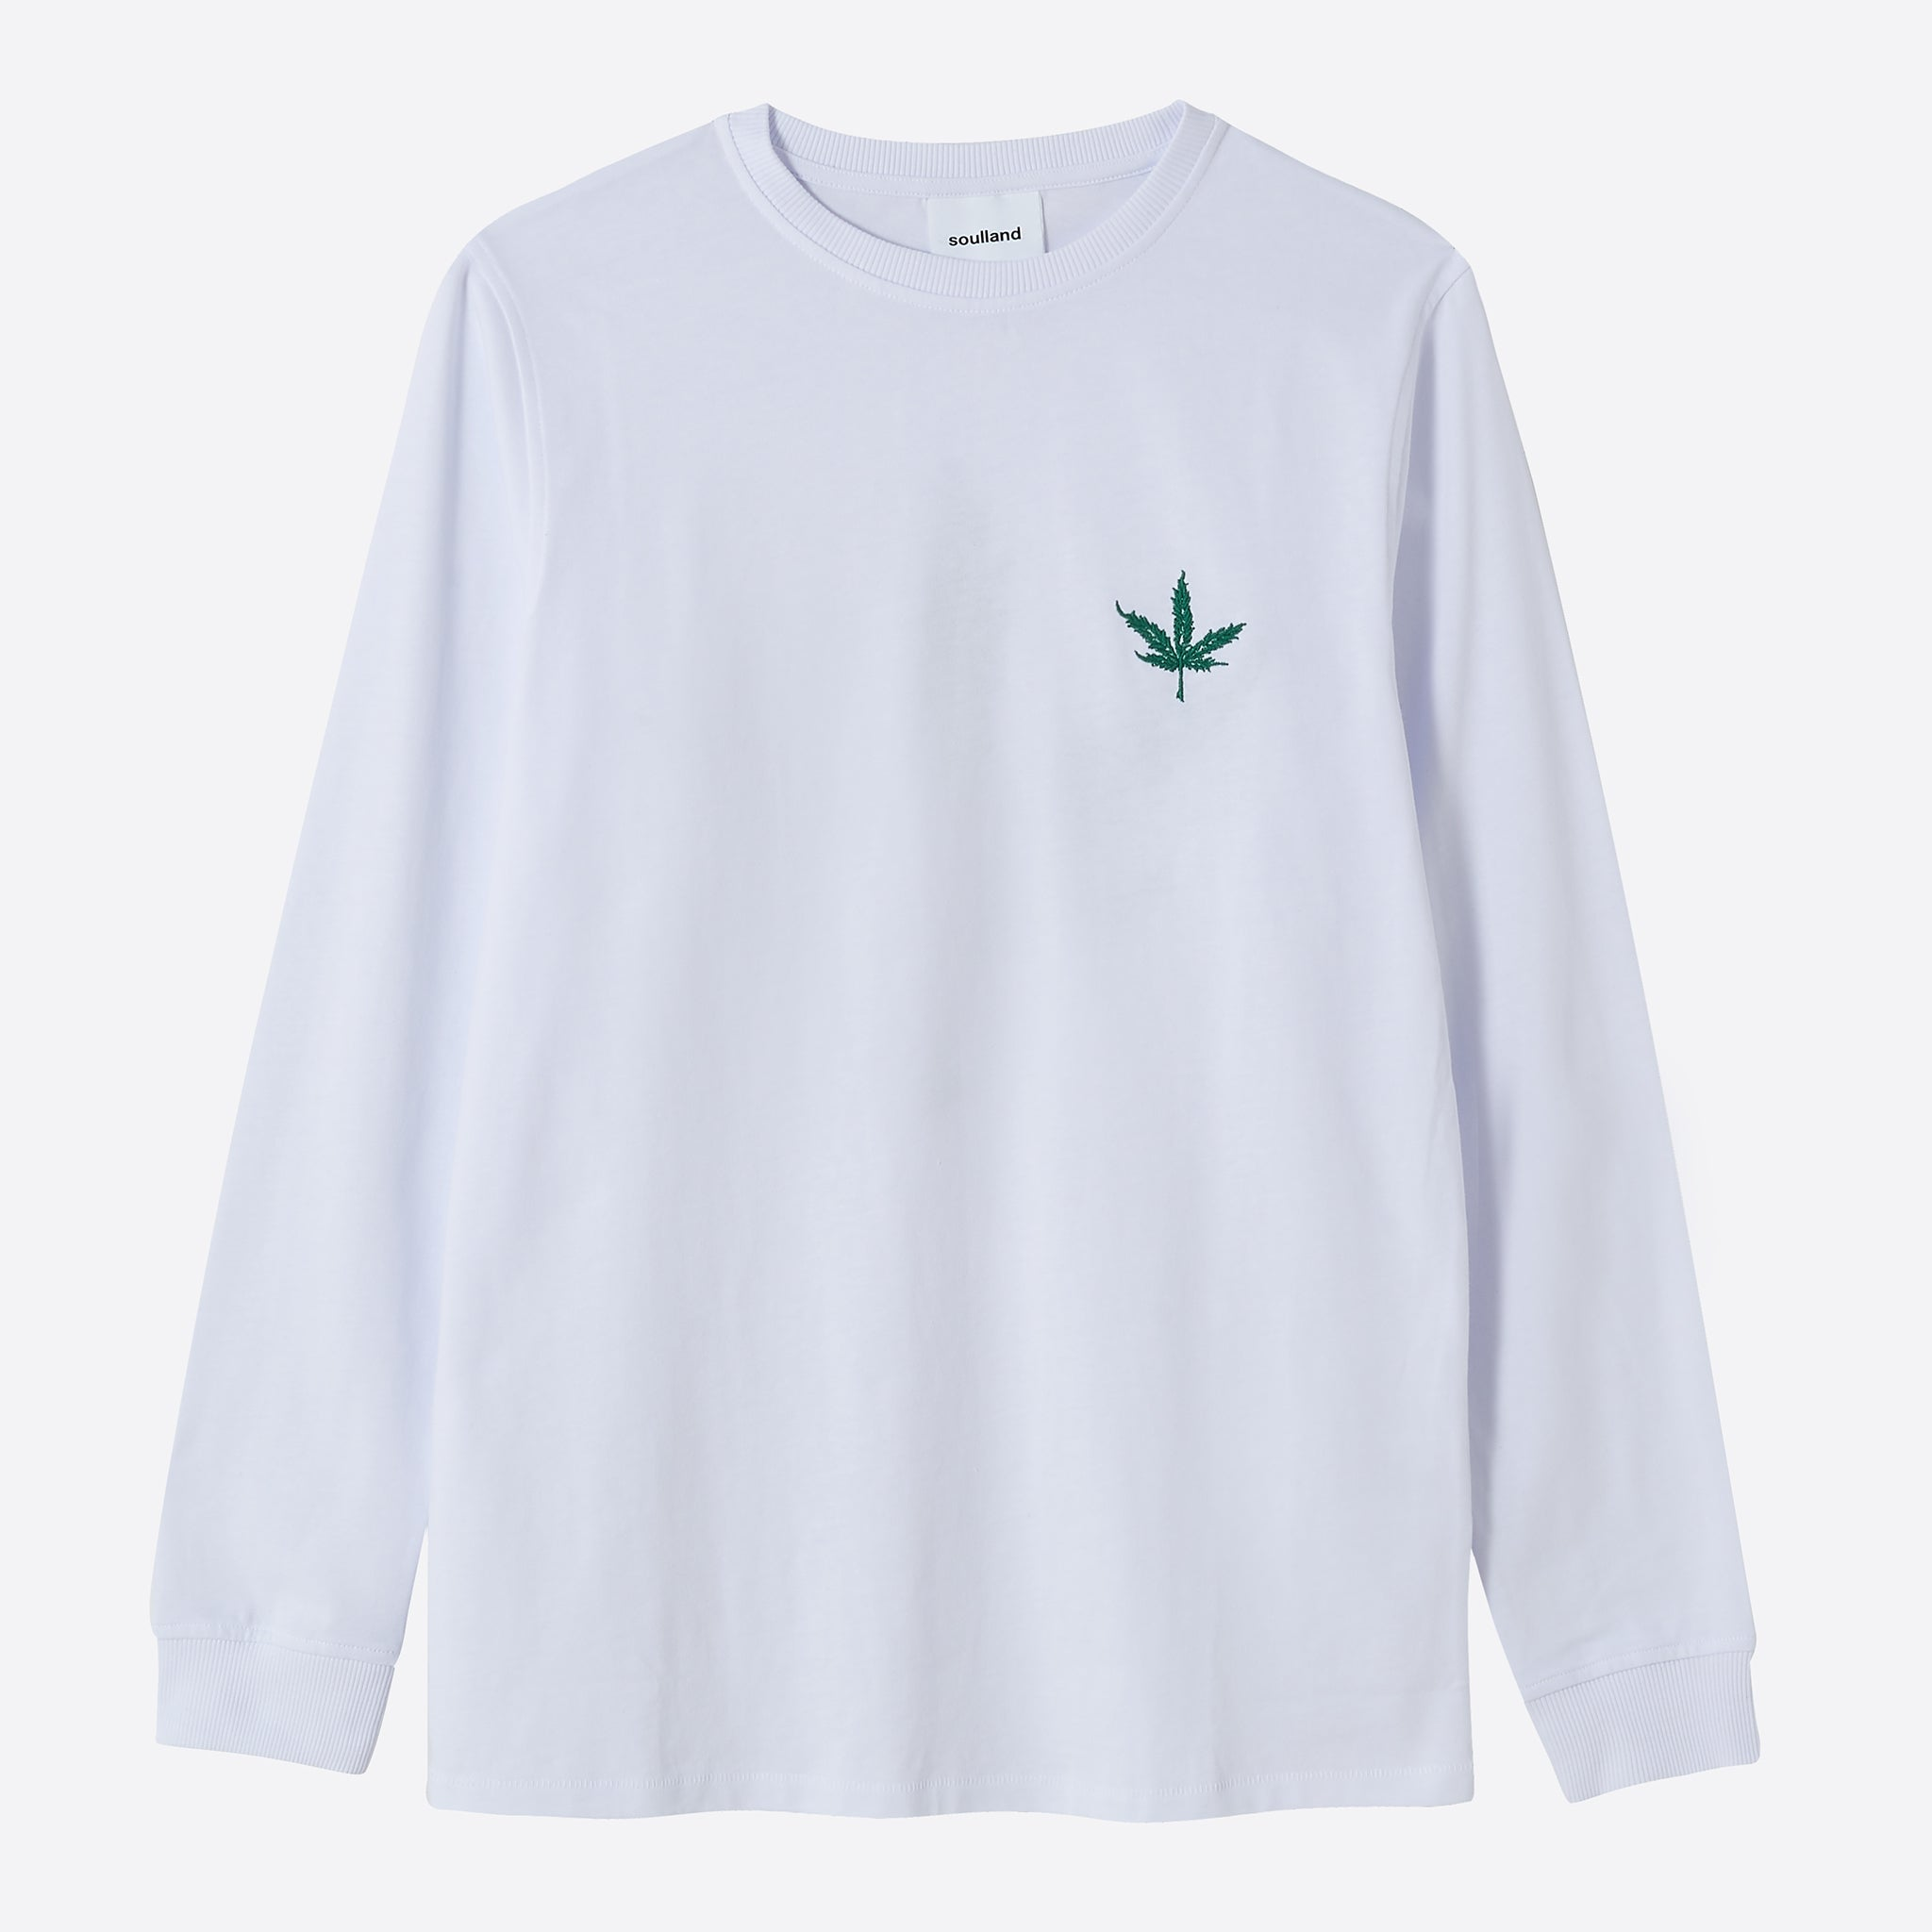 Soulland Cooper T-Shirt in White